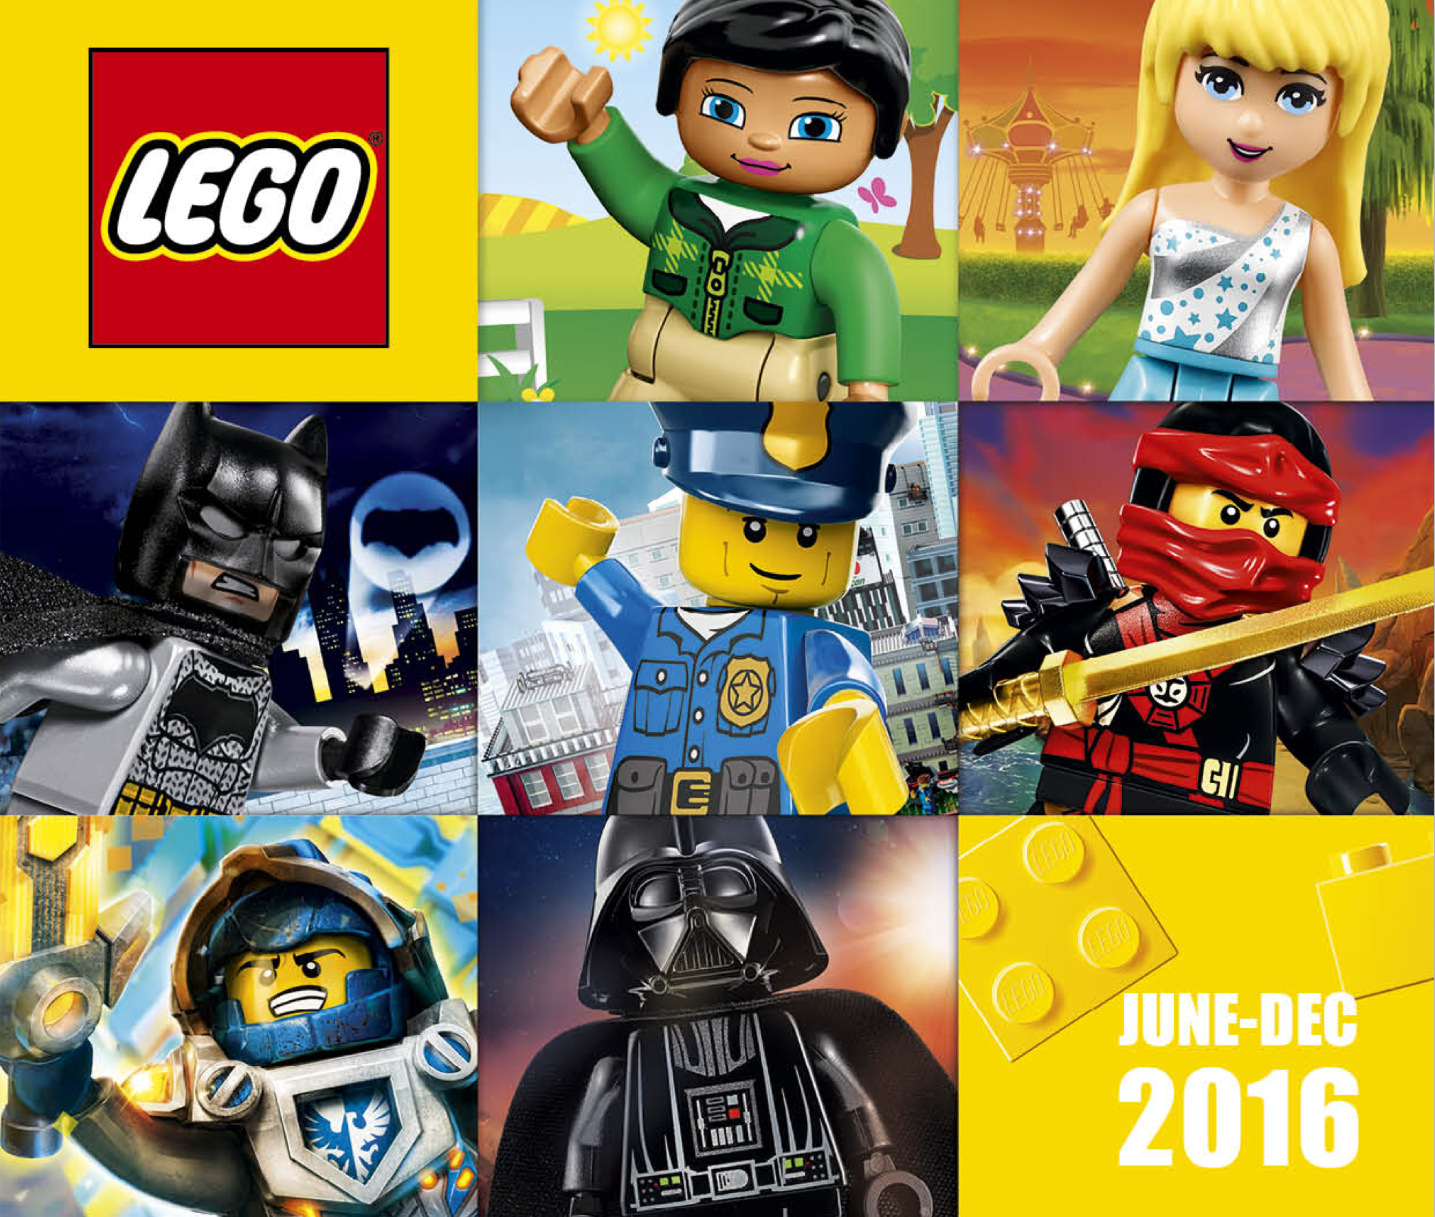 Second Half 2016 Lego Catalogue (June – December) – Jay's within Jay's Brick Blog